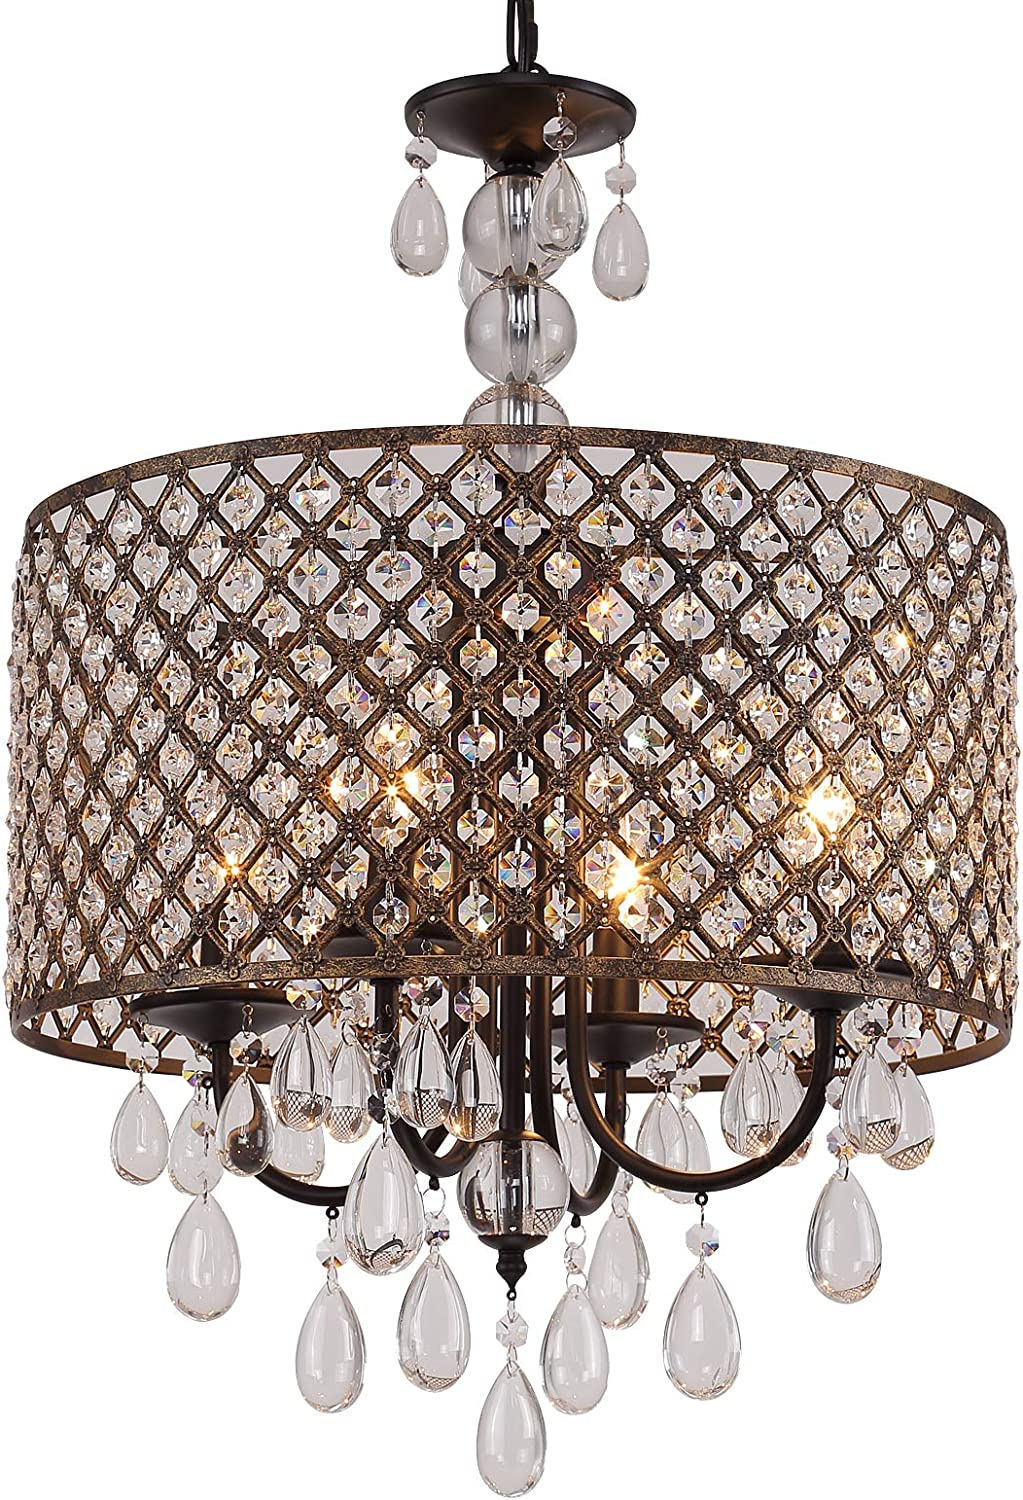 Q S Modern Round Crystal Chandelier Light Fixtures Black Antique Copper Beaded Drum Shade Pendant Hanging Lighting Perfect For Living Room Dining Room Bedroom Kitchen Foyer Entryway E12 4 Lights Home Improvement